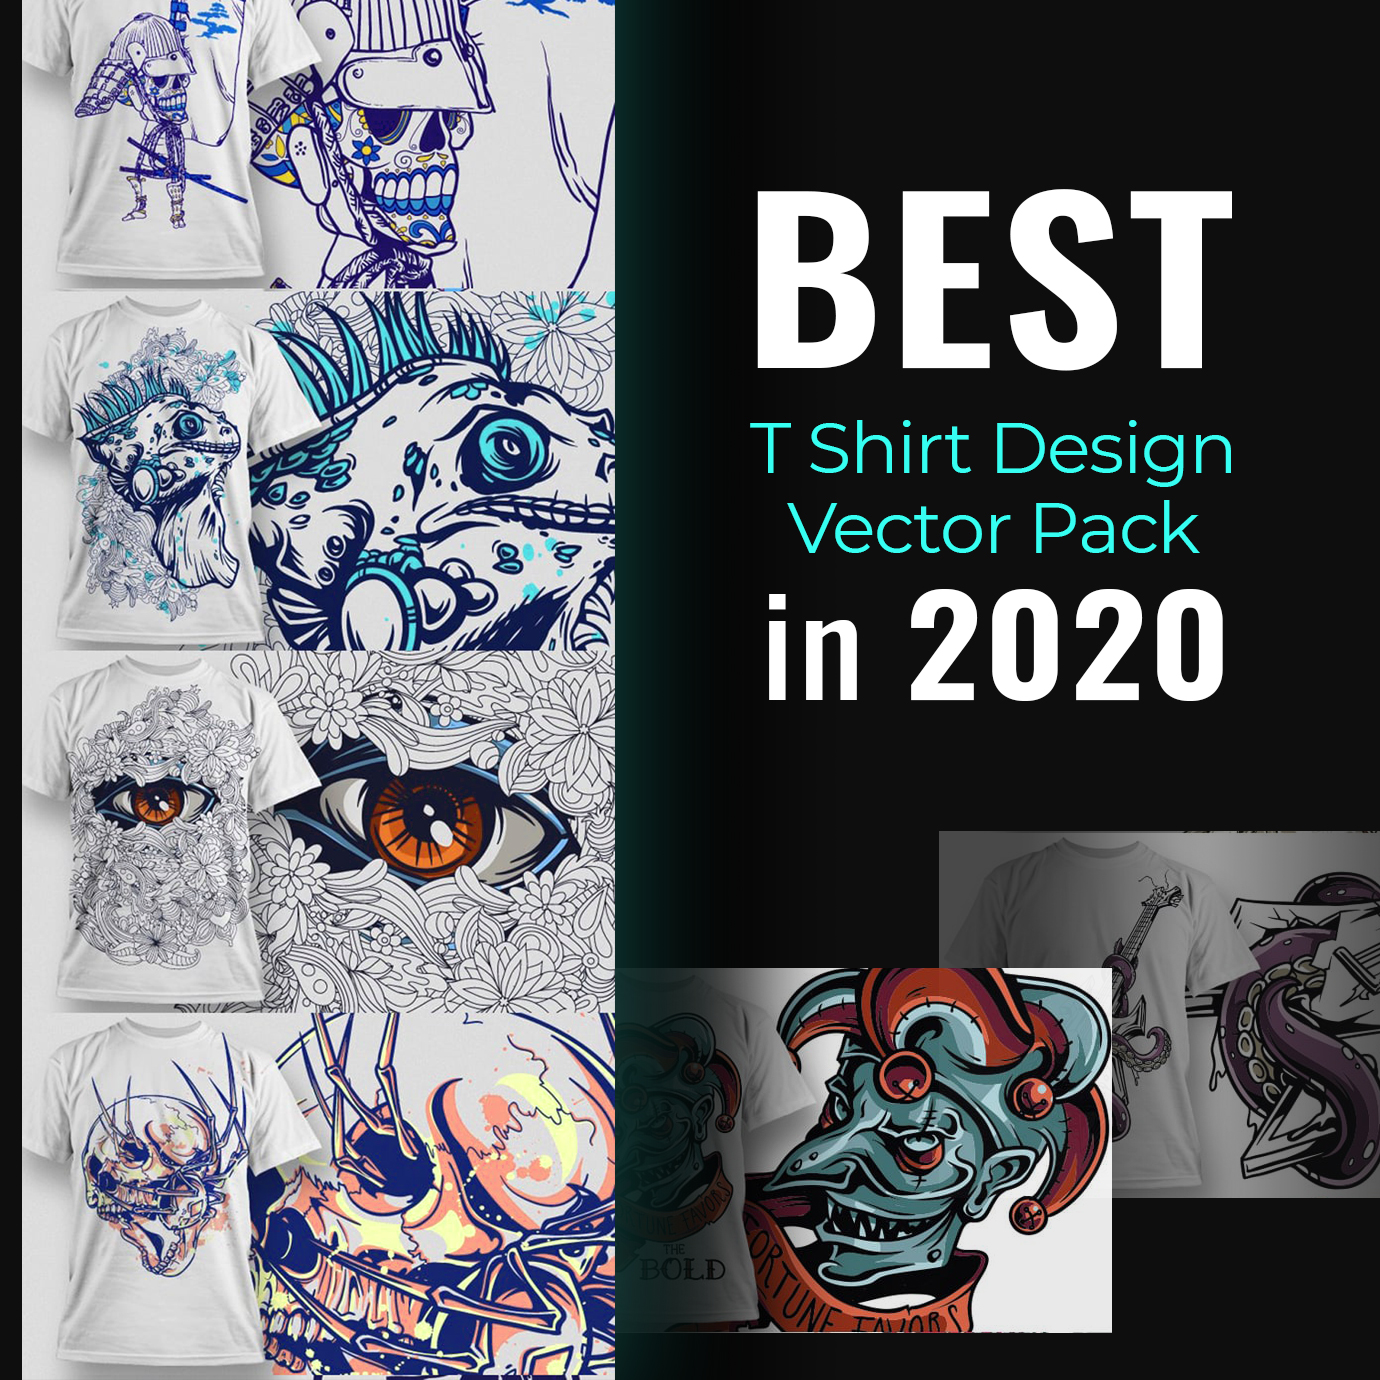 50+ Best T-Shirts 2021. Best T-Shirt Design Ideas For You - Best T Shirt Design Vector Pack 1